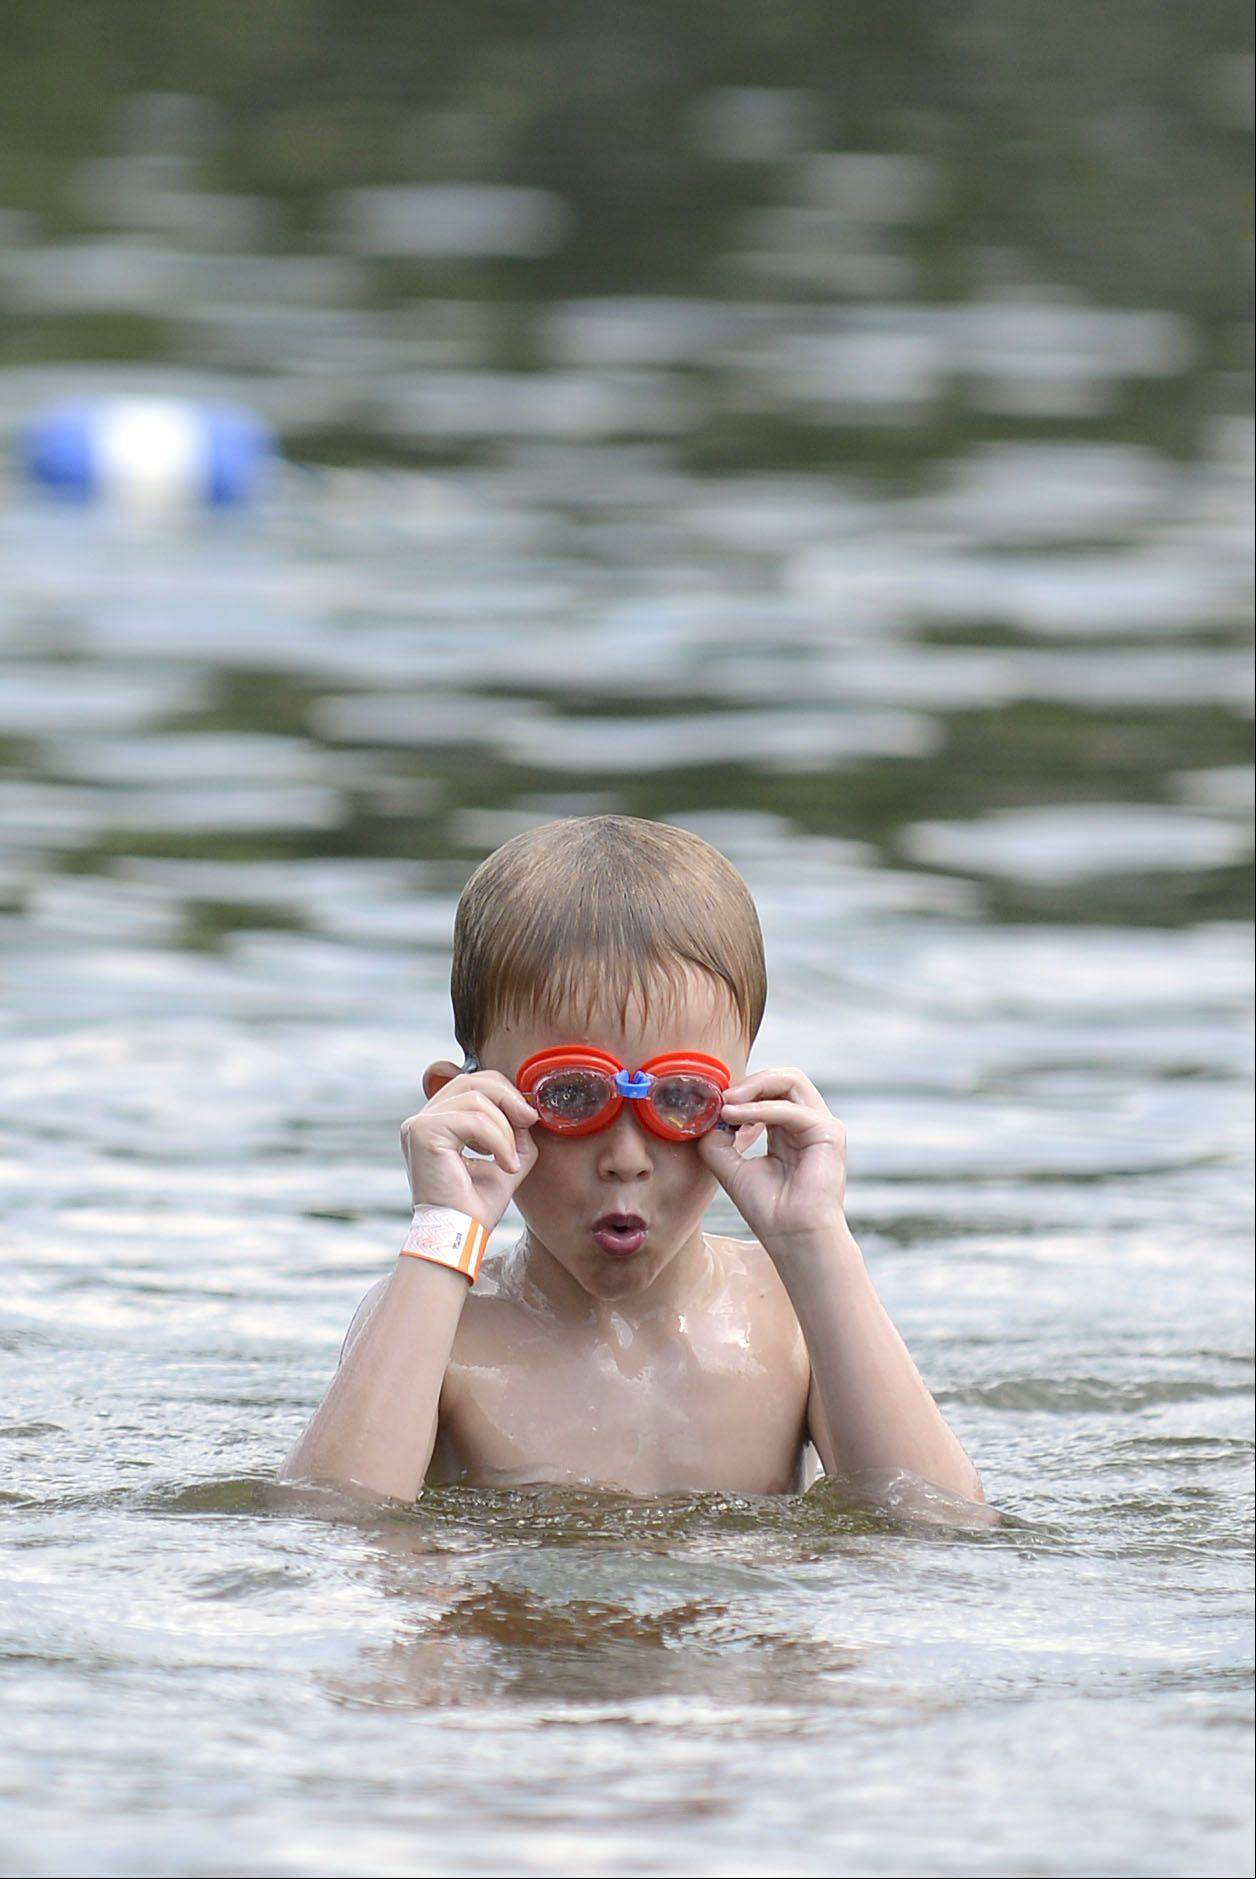 "Rory Rezendes, 5, of Algonquin surfaces to adjust his googles while investigating the lake bottom at Woods Creek Lake in Lake in the Hills on Thursday. He visited the lake for the first time with his mother, Stacey, and siblings Elliot, 4, and Marshal, 1. Rory described the water temperature as, ""Pretty good. It's fine."" Mother Stacey says she found the water, ""Definitely refreshing. I'm not a big fan of cold water, so it's nice. This you can walk (right) in to. I think it's good."""